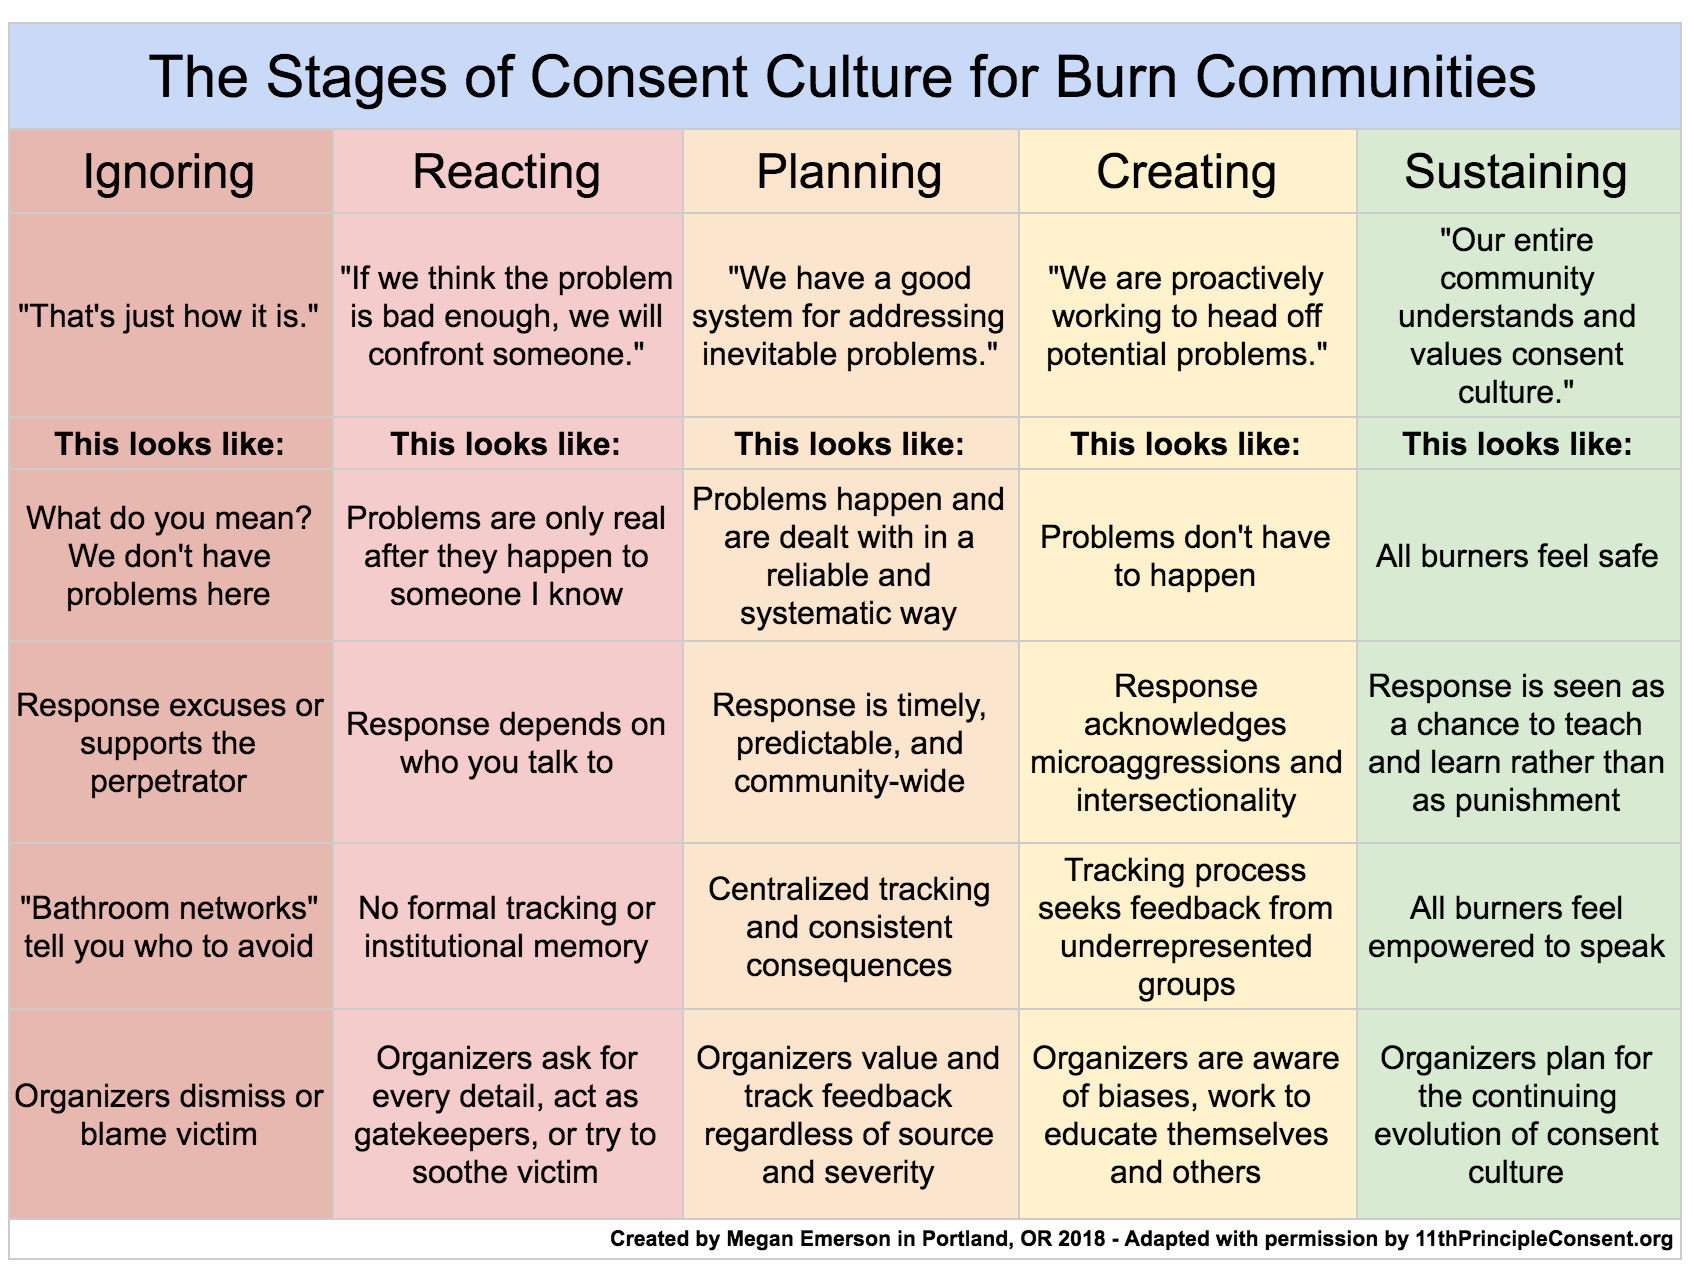 Resources & the Stages of Consent Culture for Burn Communities - 11th Principle: Consent!